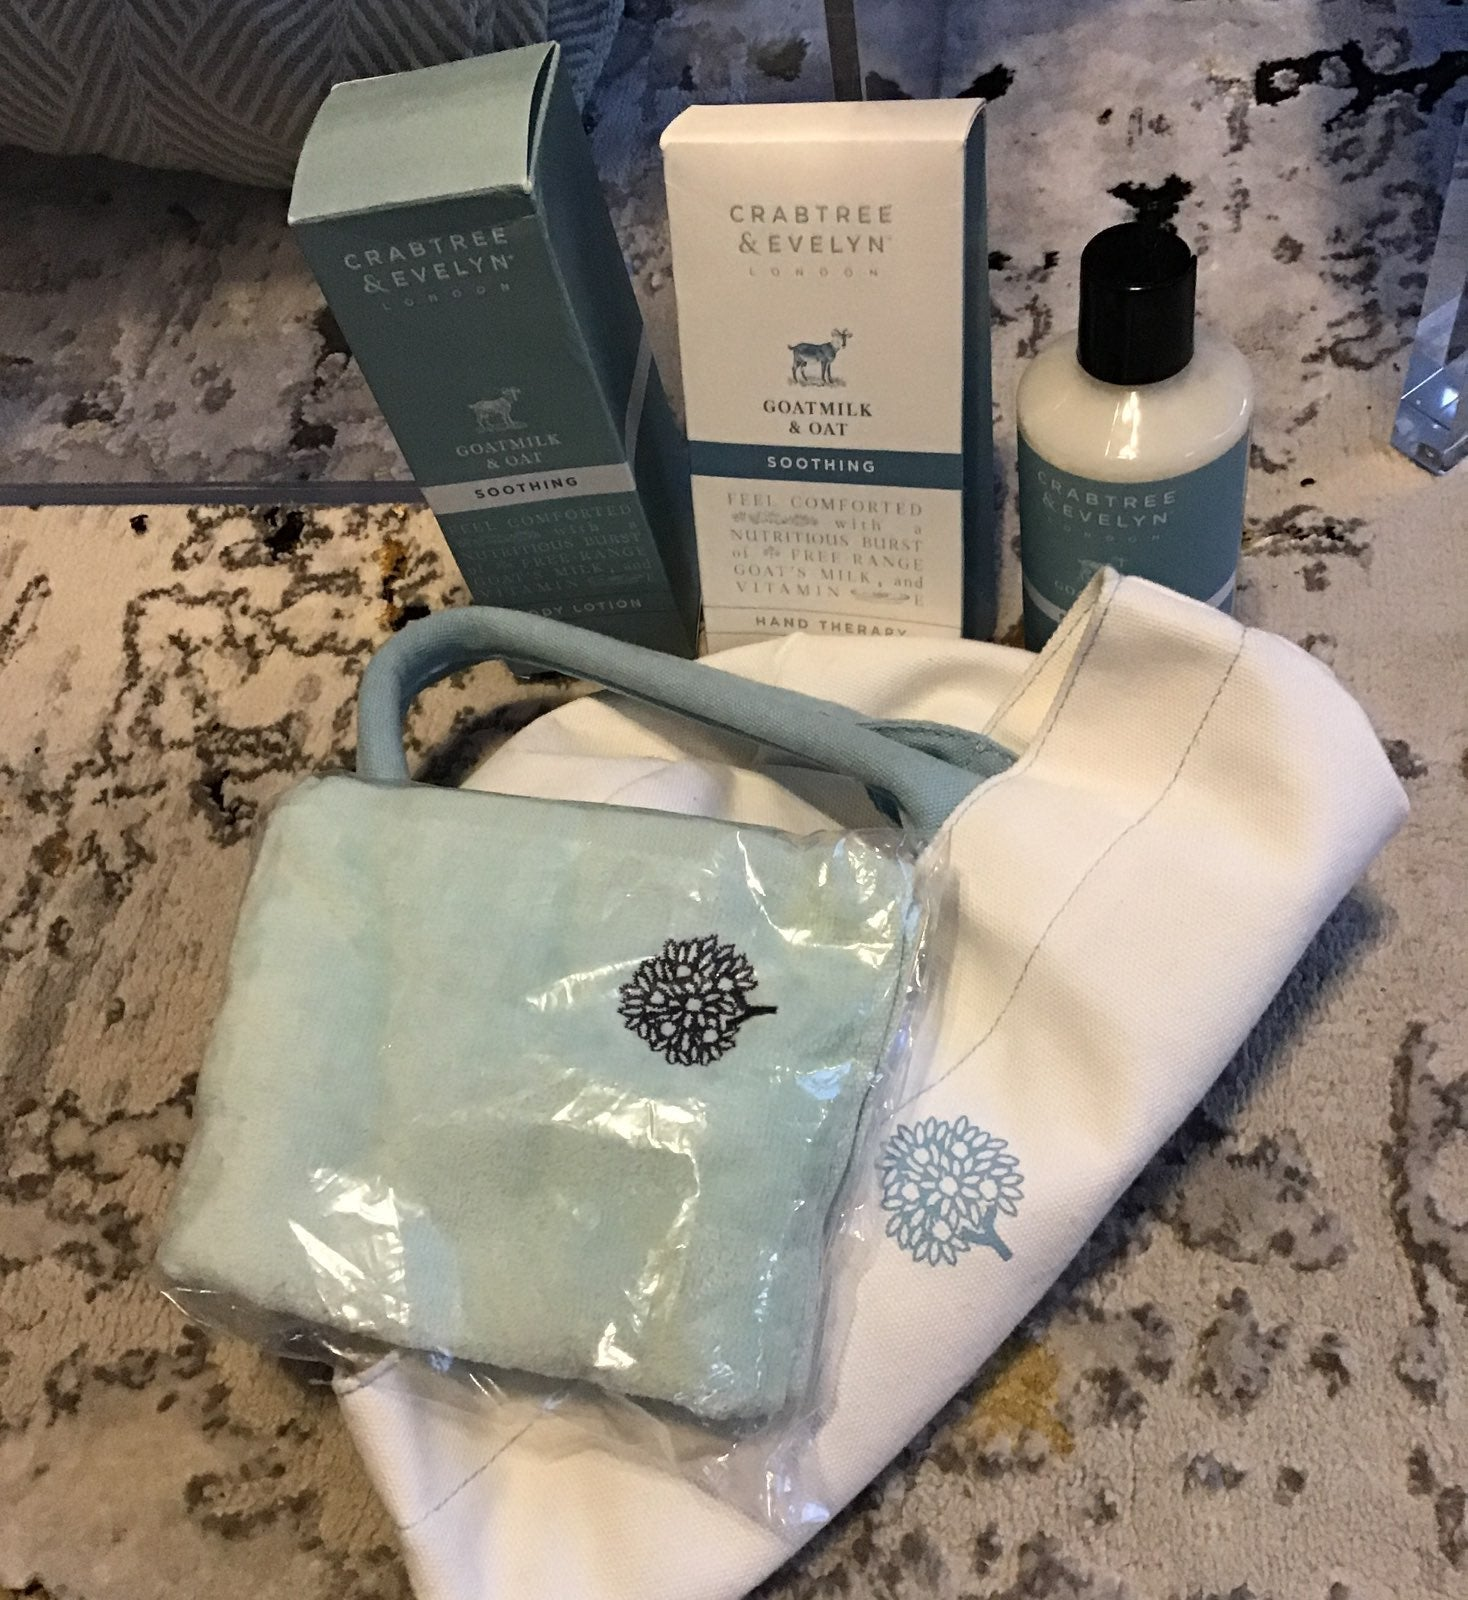 Crabtree & Evelyn Goatmilk & Oat Tote